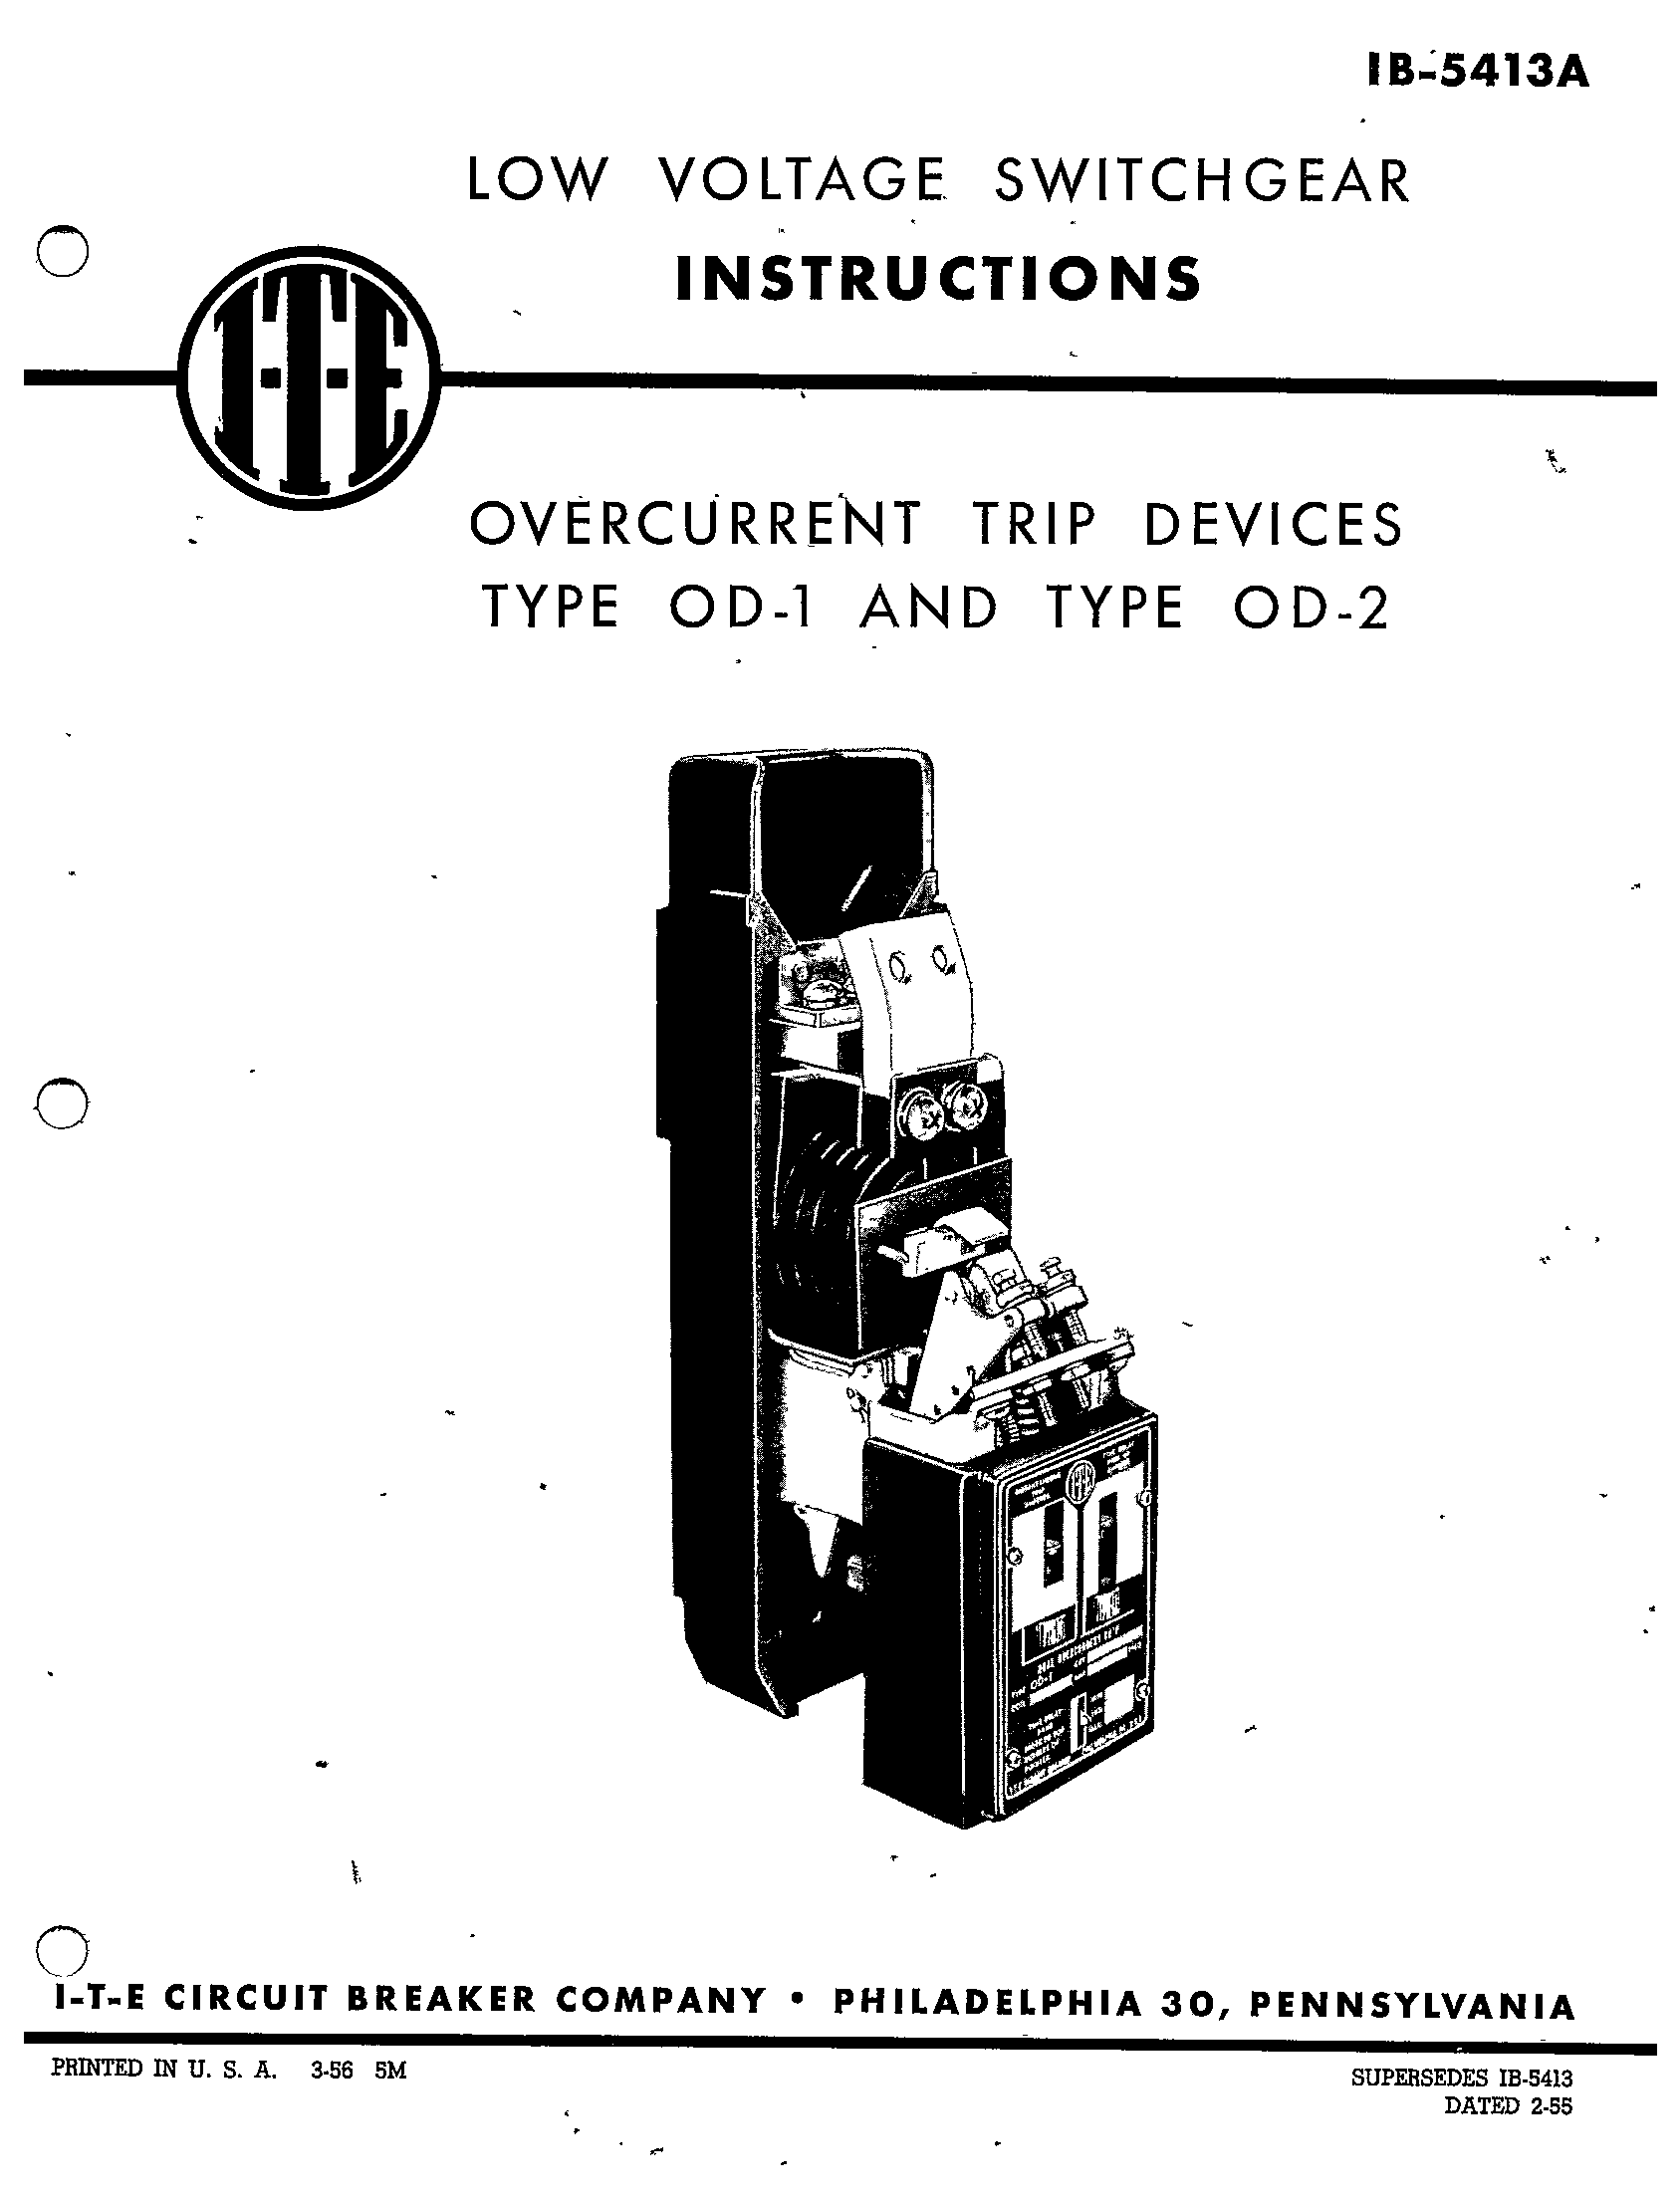 IB-5413A OVERCURRENT TRIP DEVICES TYPE OD-1 AND TYPE OD-2